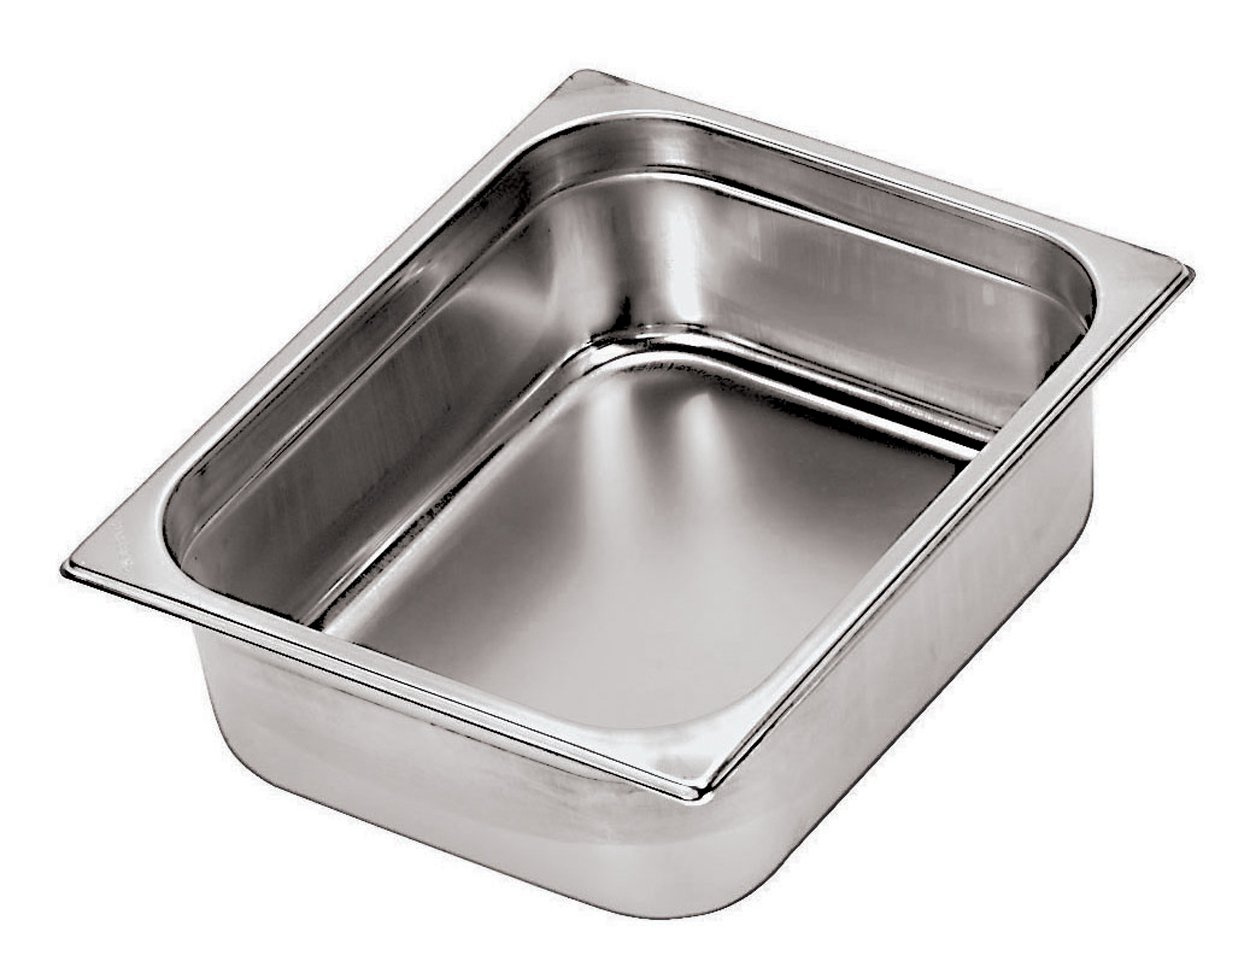 Paderno World Cuisine 7 inches by 6 1/4 inches Stainless-steel Hotel Pan - 1/6 (depth: 6 inches)